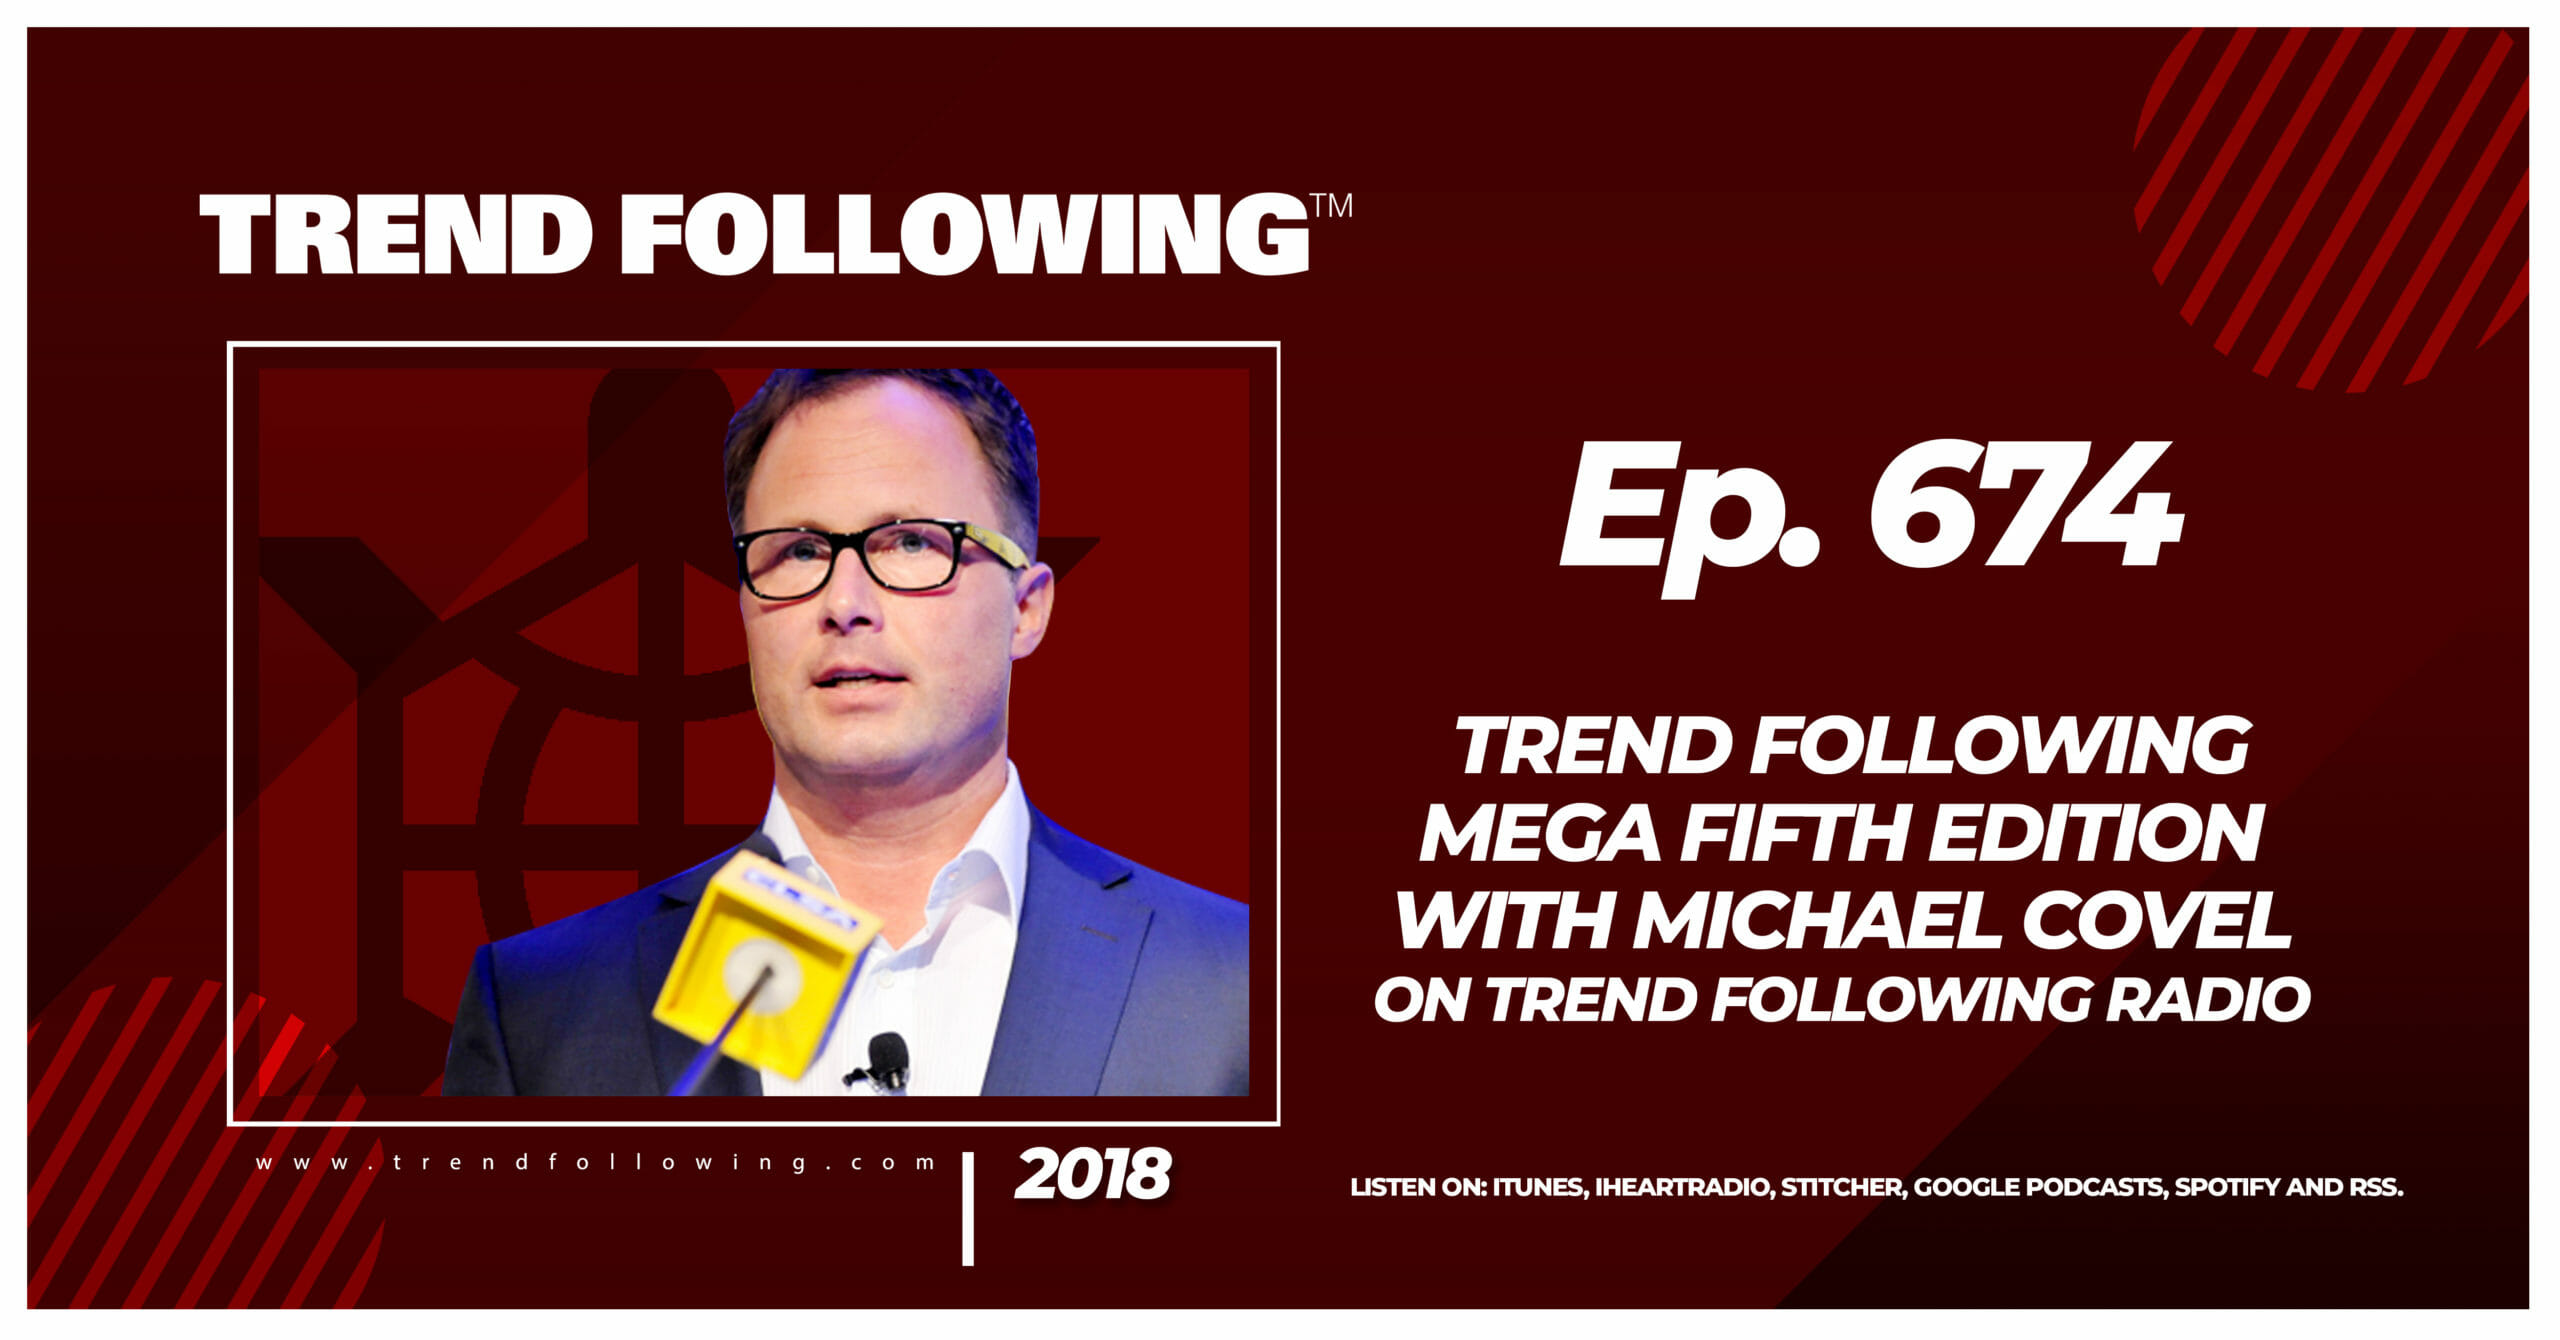 Trend Following Mega Fifth Edition with Michael Covel